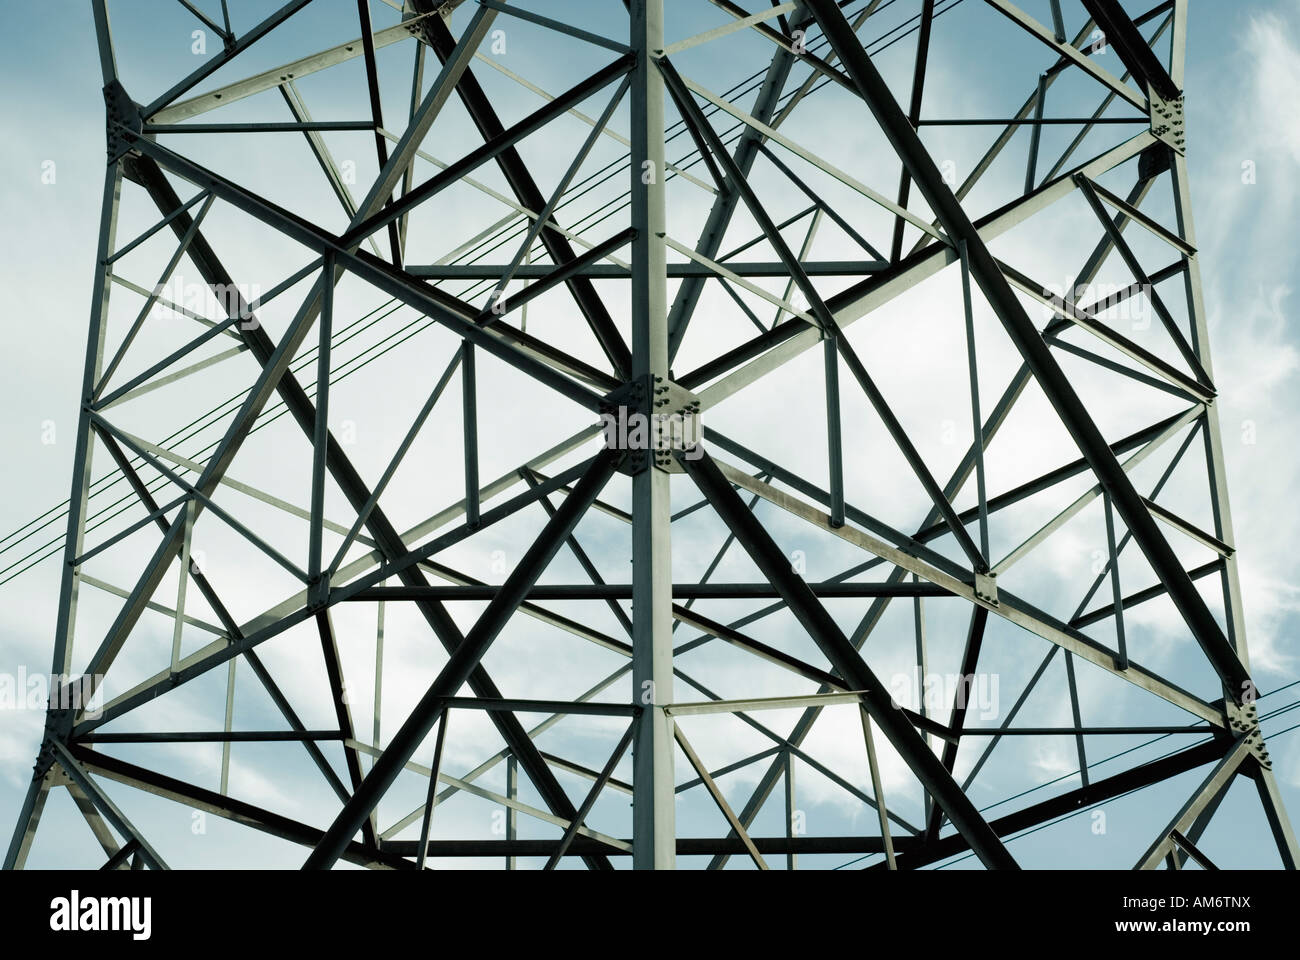 Detail of High graphicVoltage Electricity Transmission Tower - Stock Image